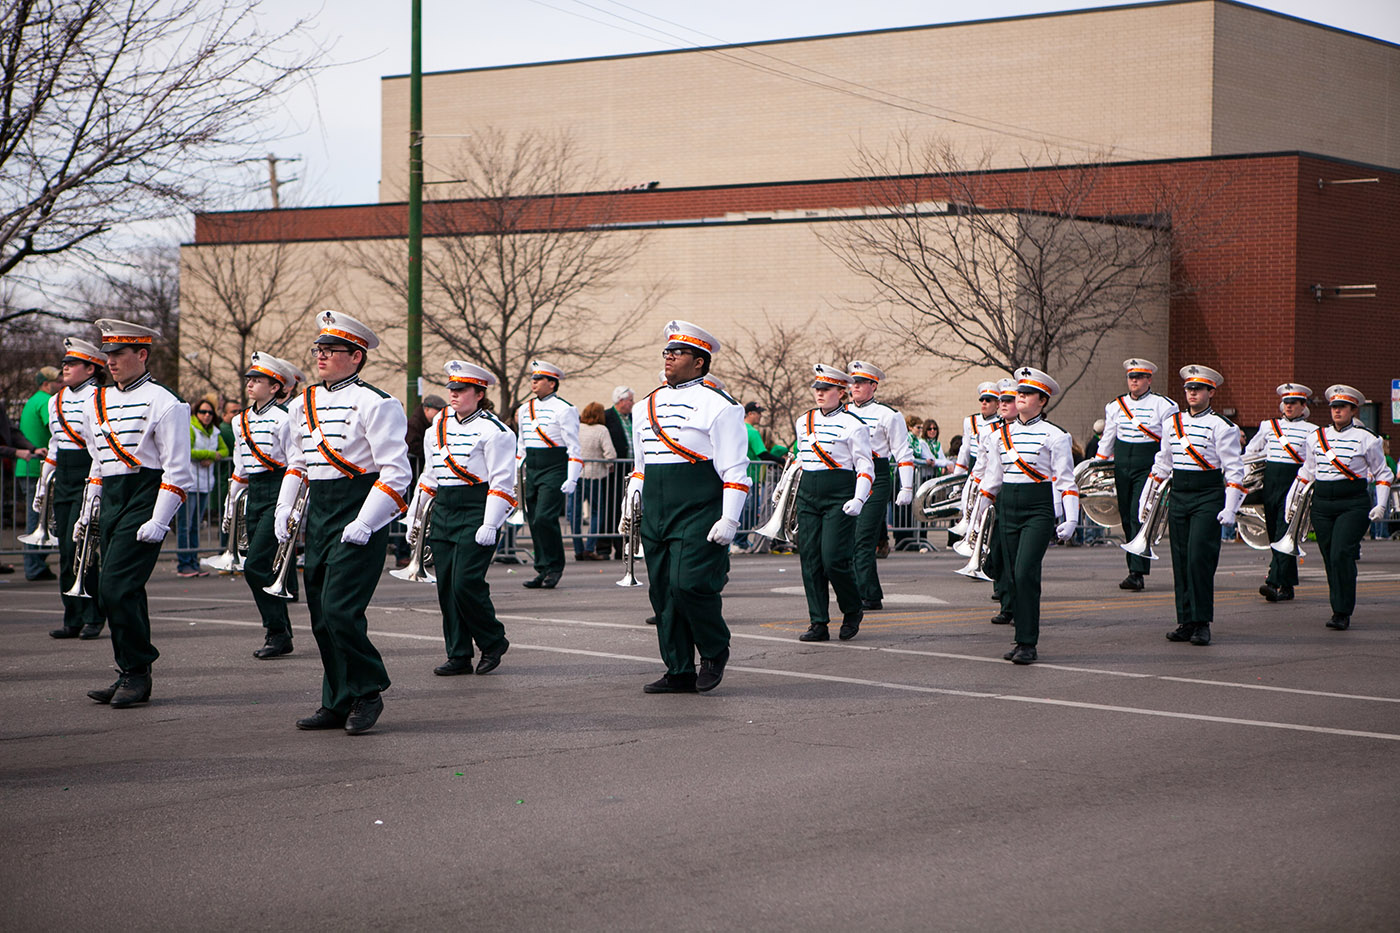 Marching band at the Chicago South Side Irish Parade 2015 - St. Patrick's Day